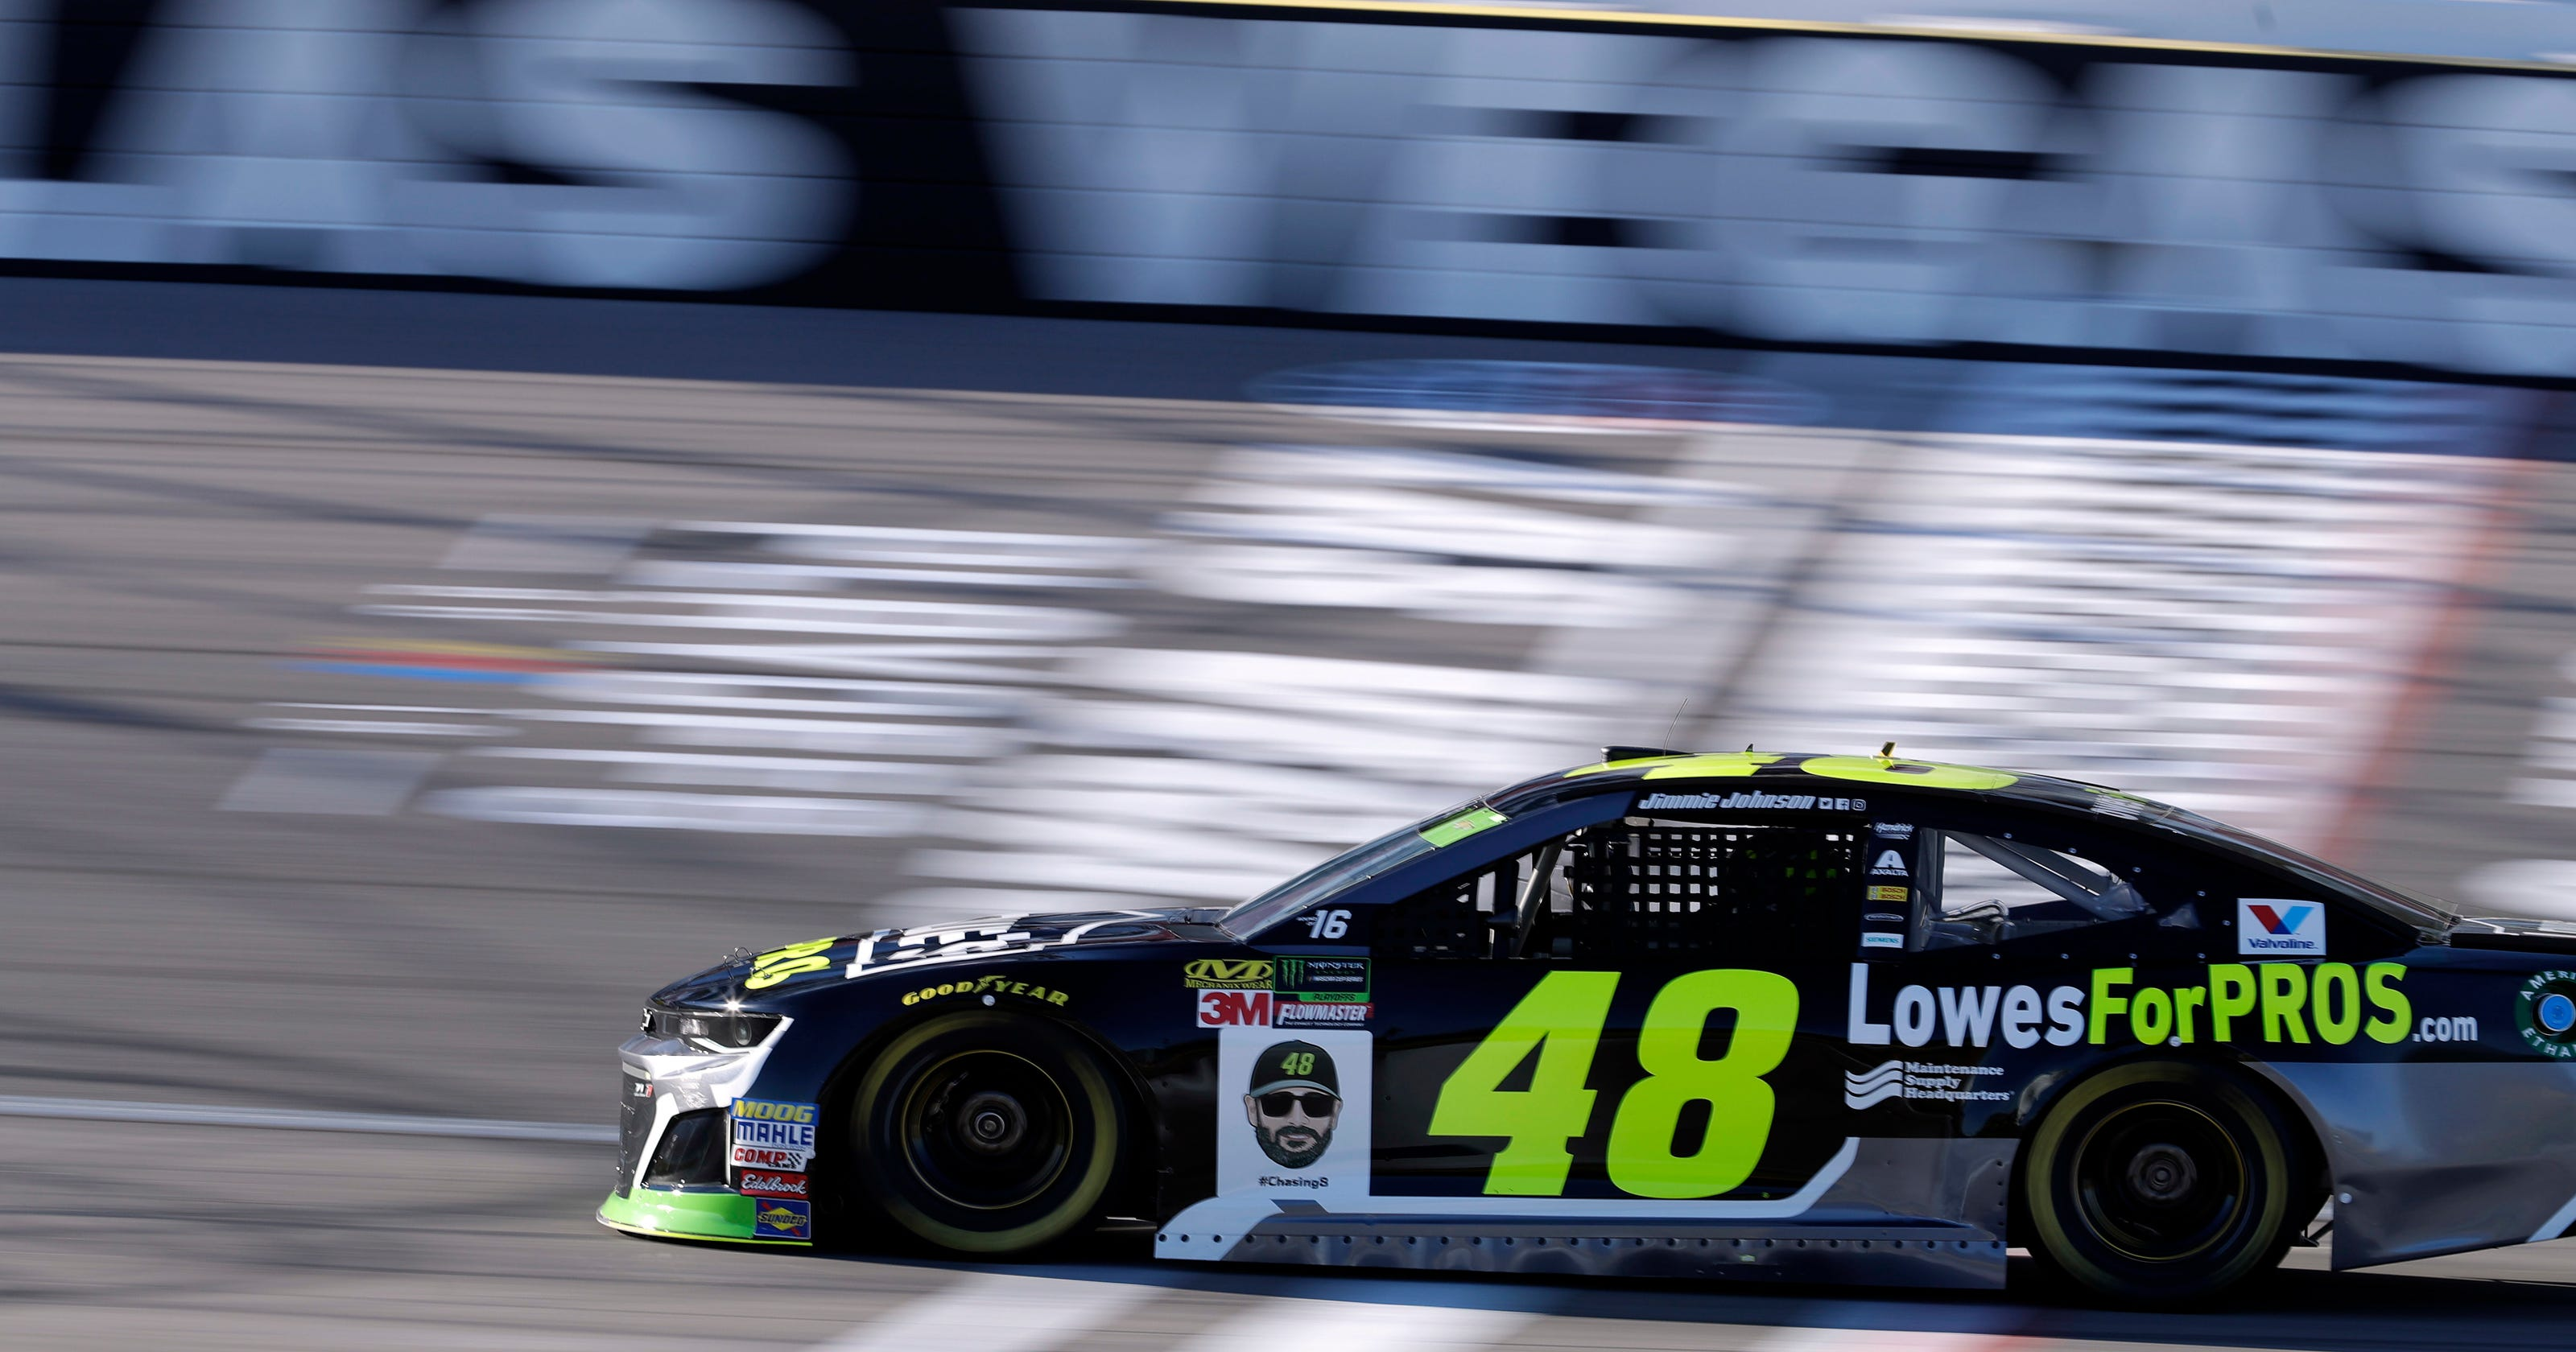 The heat is on: NASCAR playoff push kicks into gear in Vegas